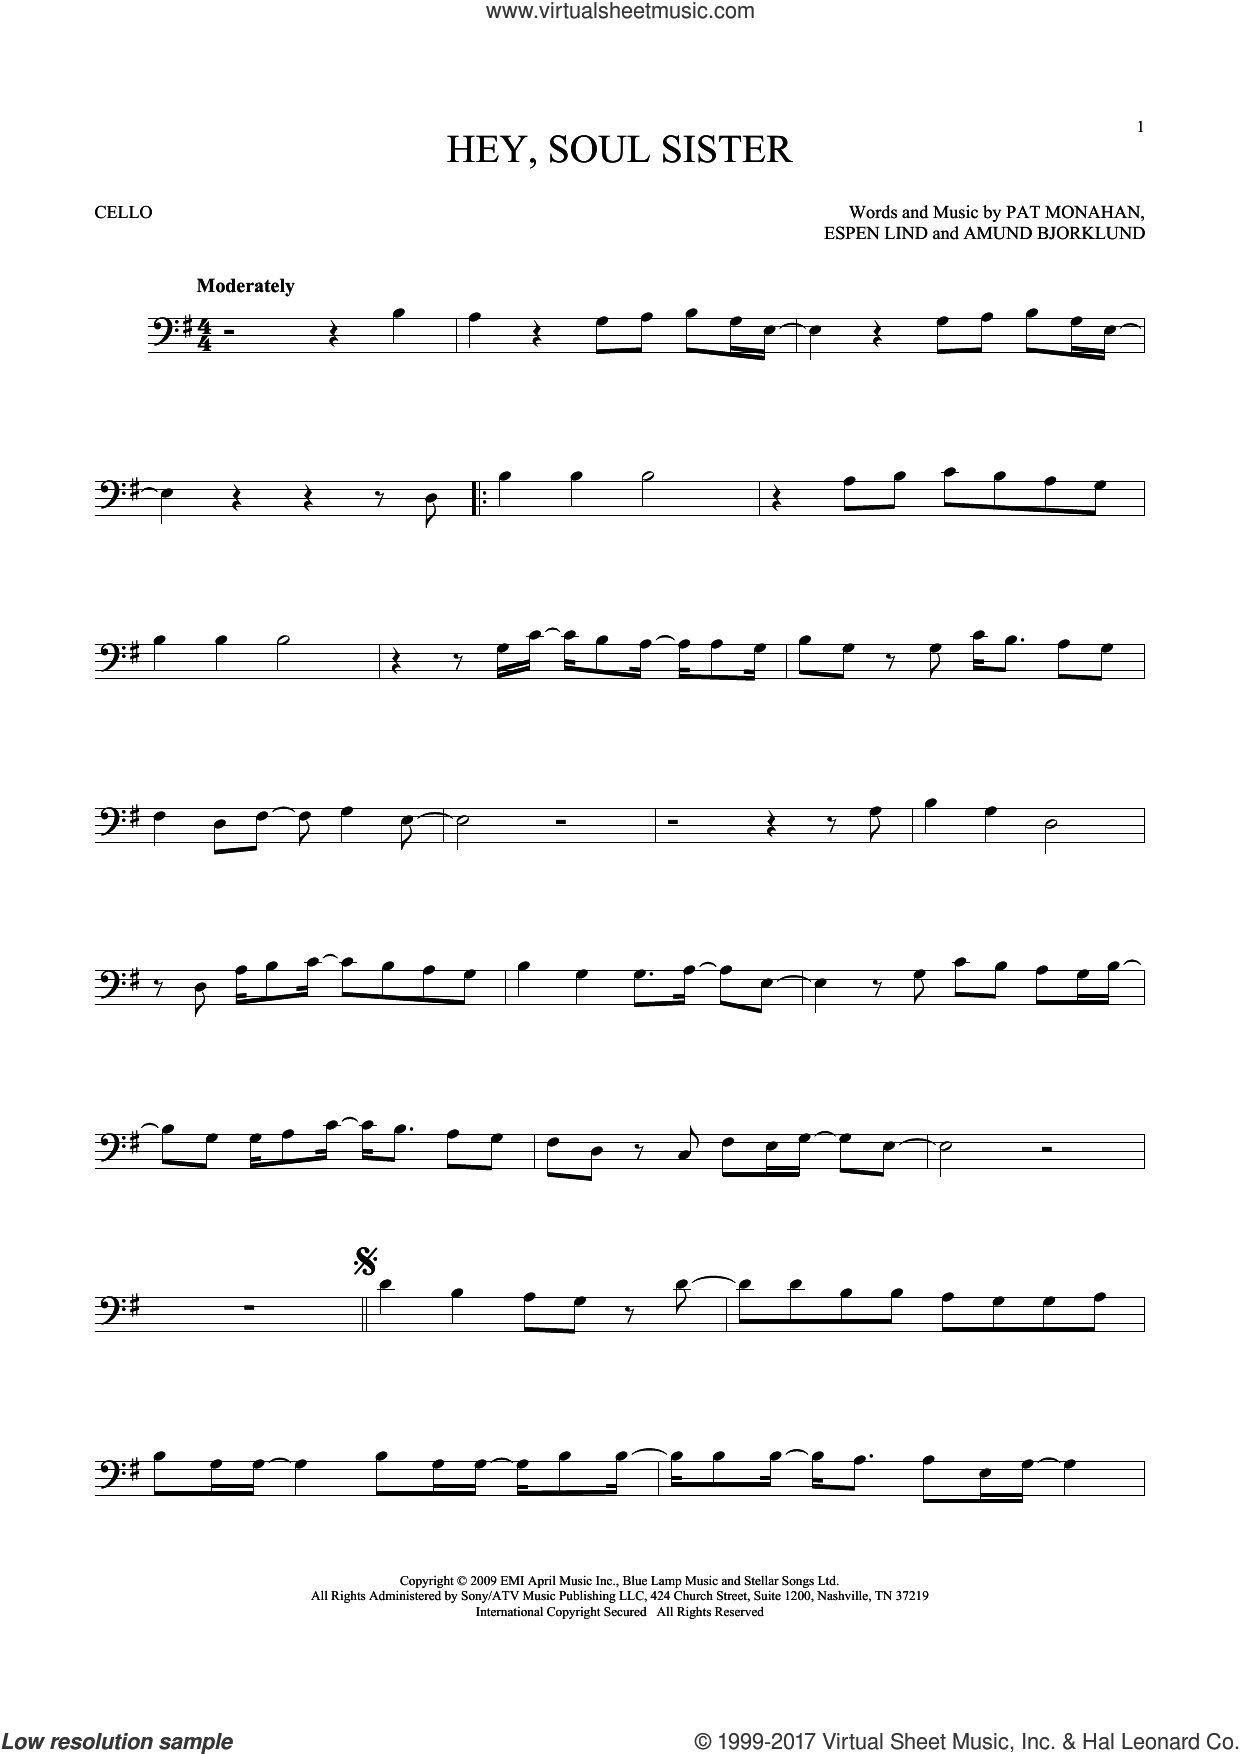 Hey, Soul Sister sheet music for cello solo by Train, Amund Bjorklund, Espen Lind and Pat Monahan, intermediate skill level